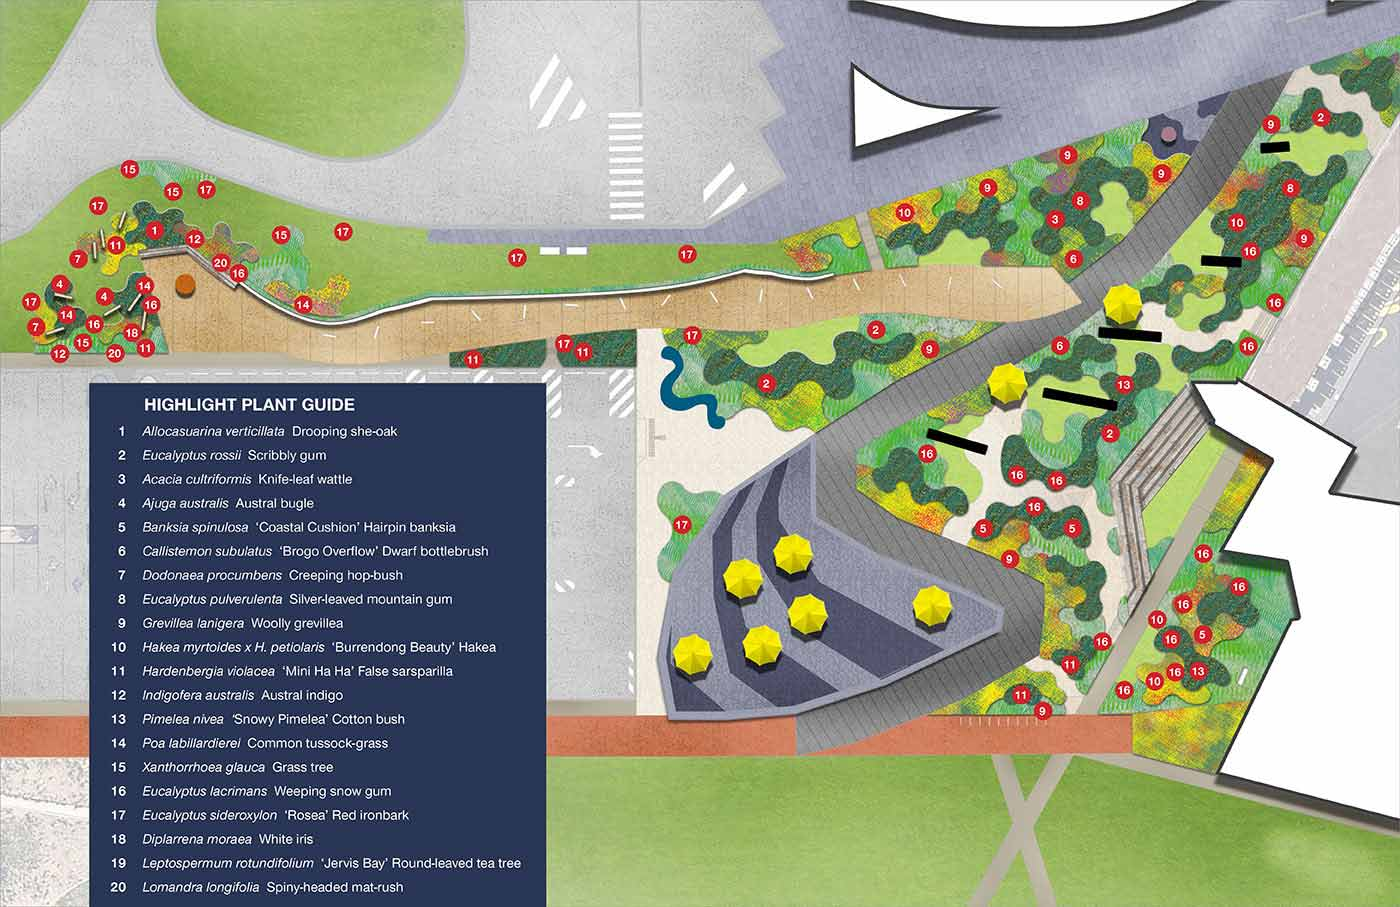 Map of Forecourt Garden showing plantings - click to view larger image